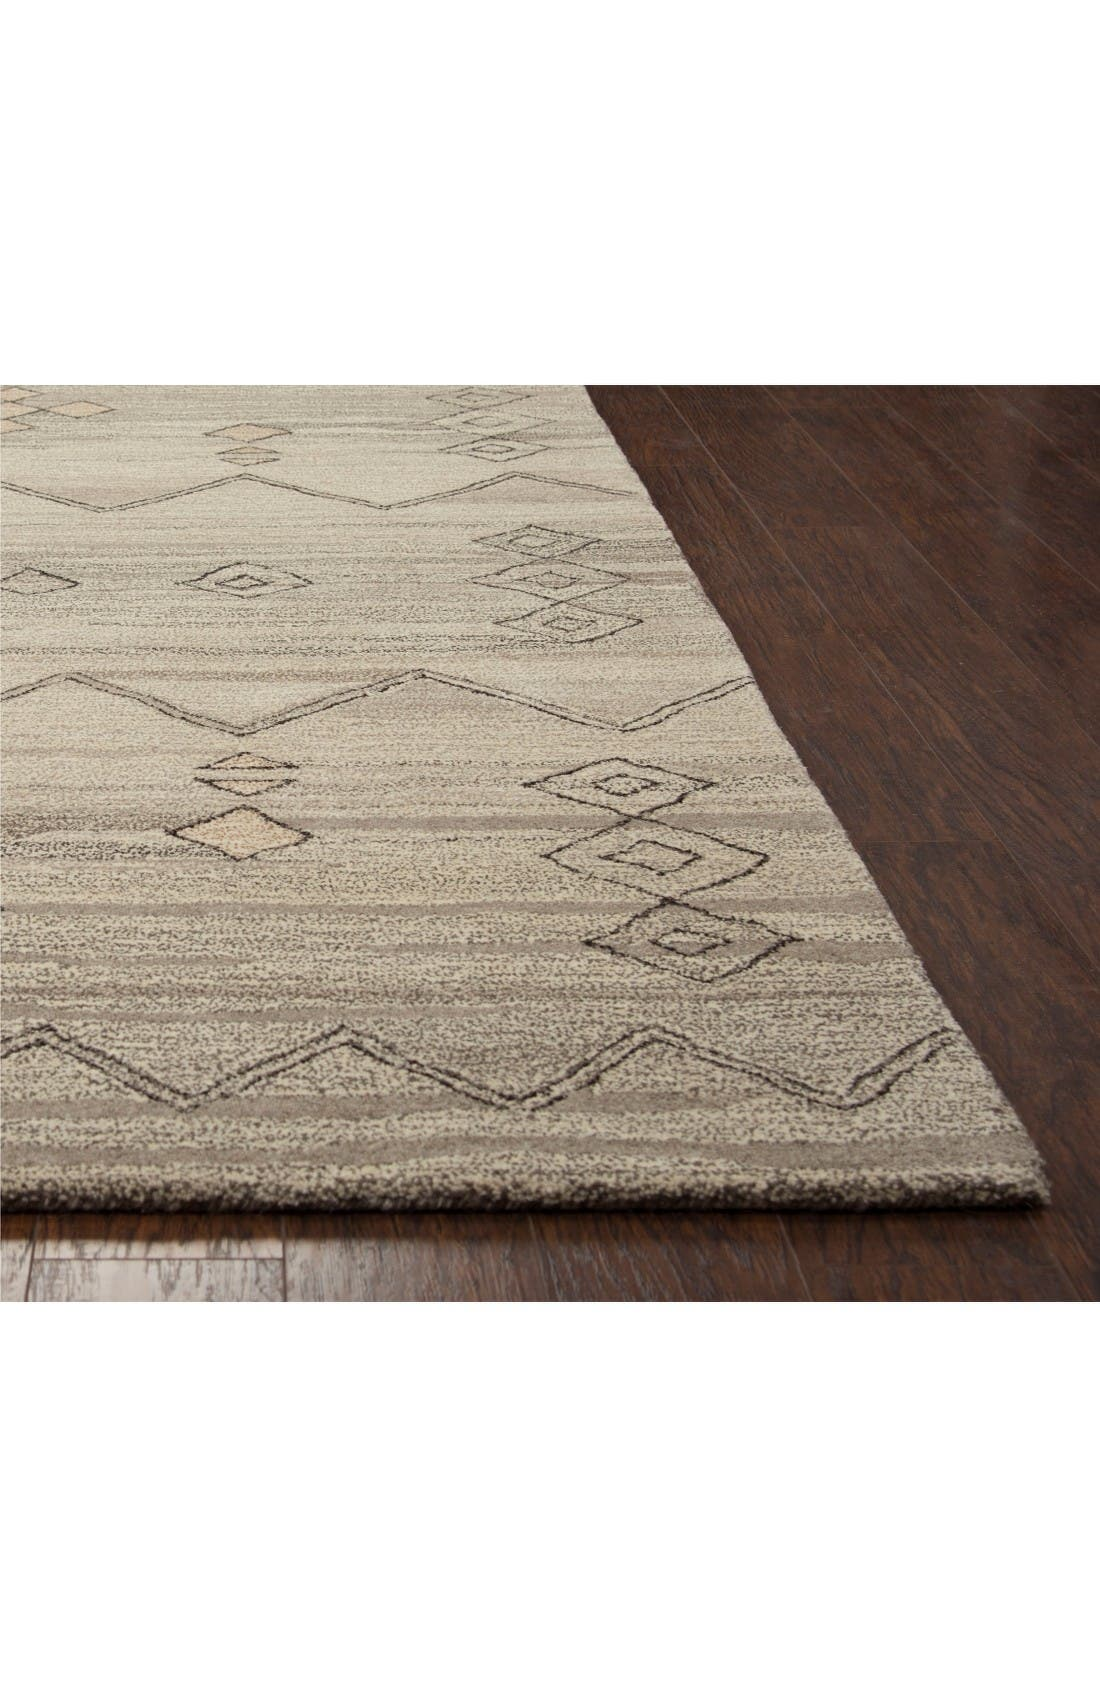 Desert Plains Hand Tufted Wool Area Rug,                             Alternate thumbnail 2, color,                             Grey